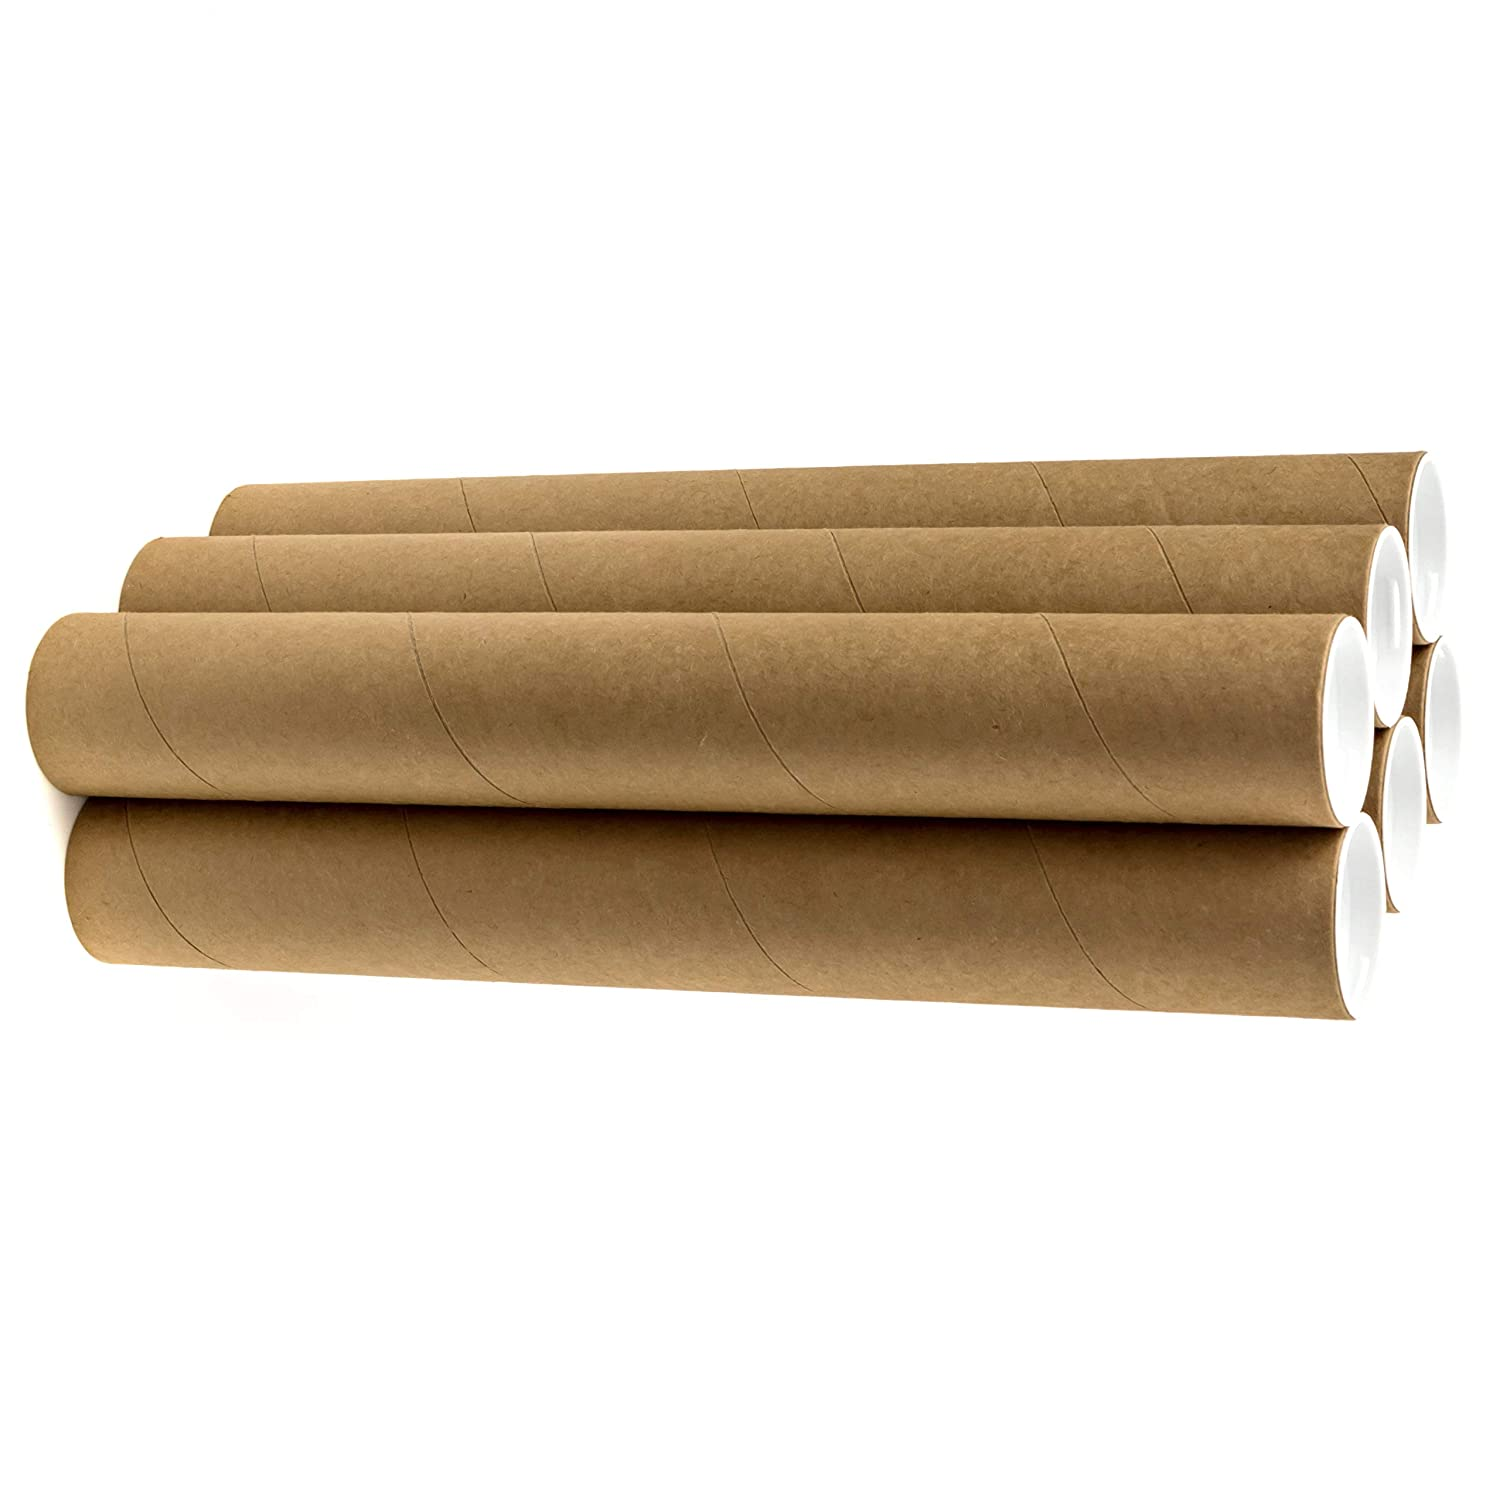 2 x 18 Cardboard Mailing Tubes - 6 Pack with White Caps, Poster Tubes, Document Tubes, Shipping Tubes for Storage, Mailing, and Protecting Your Art, Drawings, Posters & Prints Precision Cardboard Co.